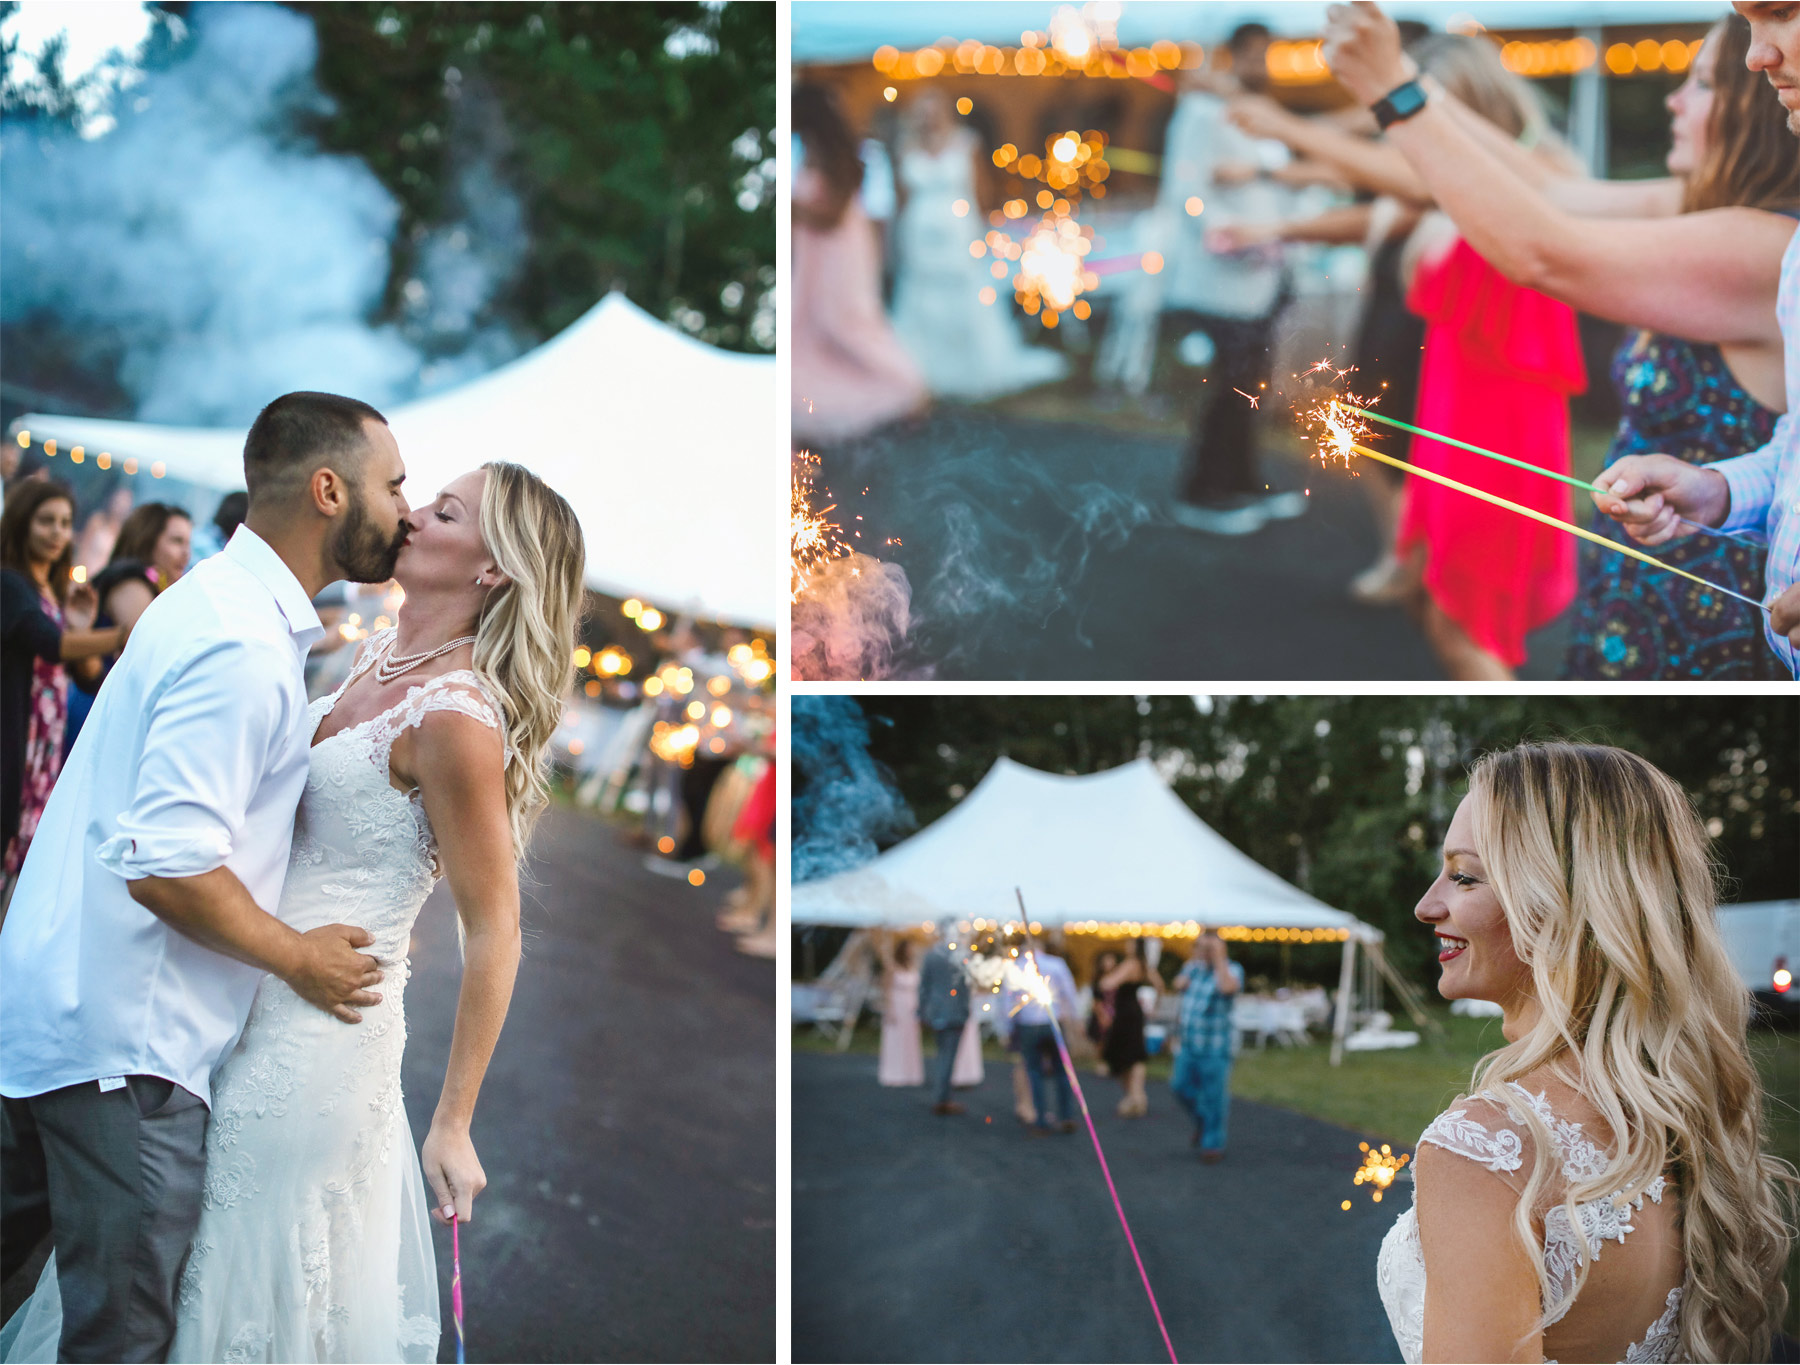 21-Ely-Minnesota-North-Wedding-by-Andrew-Vick-Photography-Sparklers-Send-Off-Bride-Groom-Kiss-Katie-and-Joe.jpg